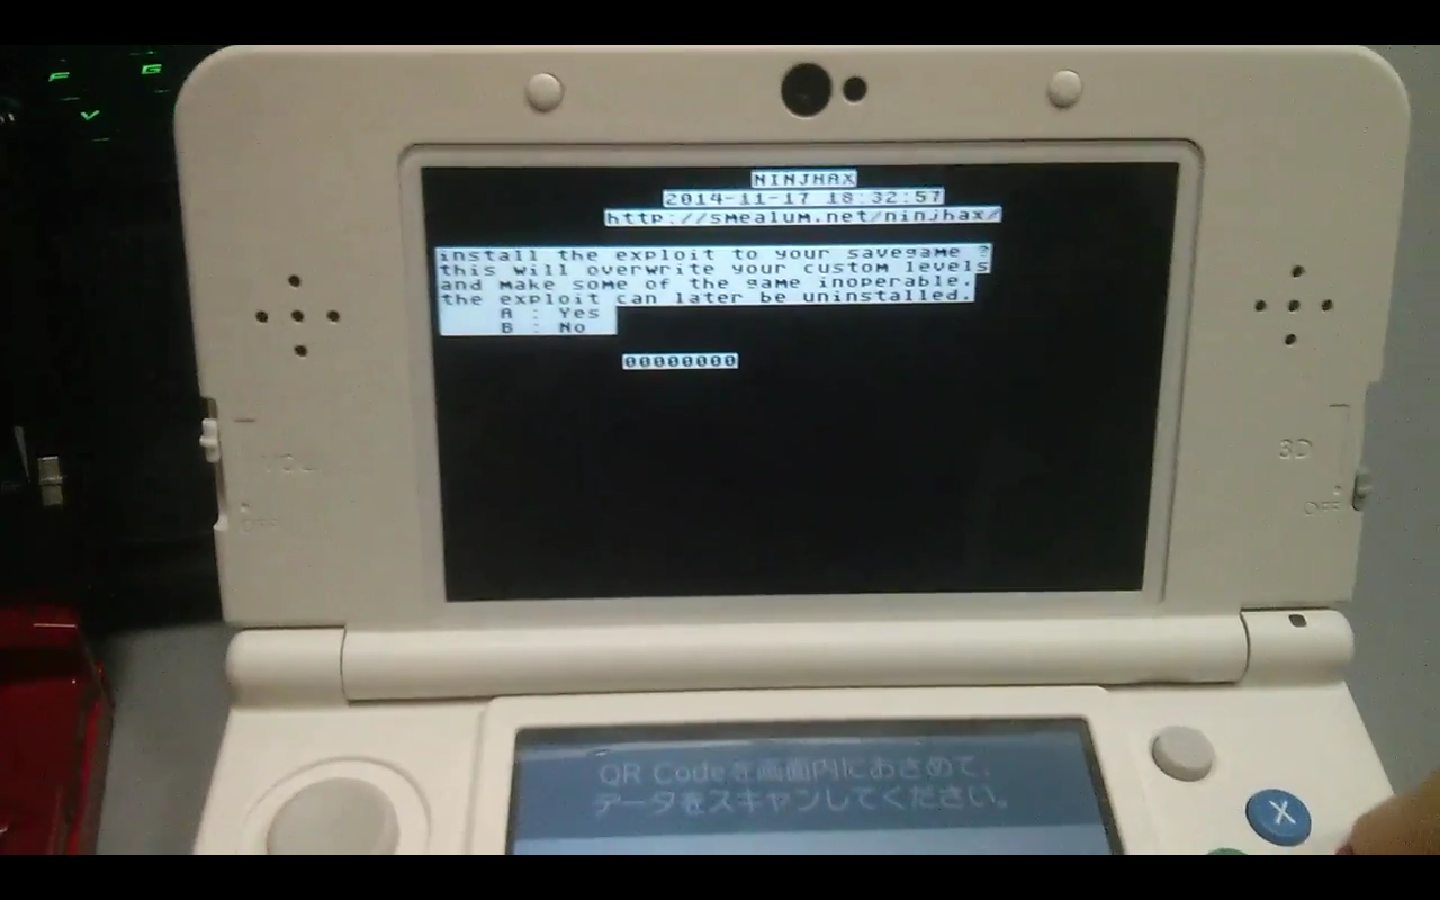 how to run kernel exploit on 3ds